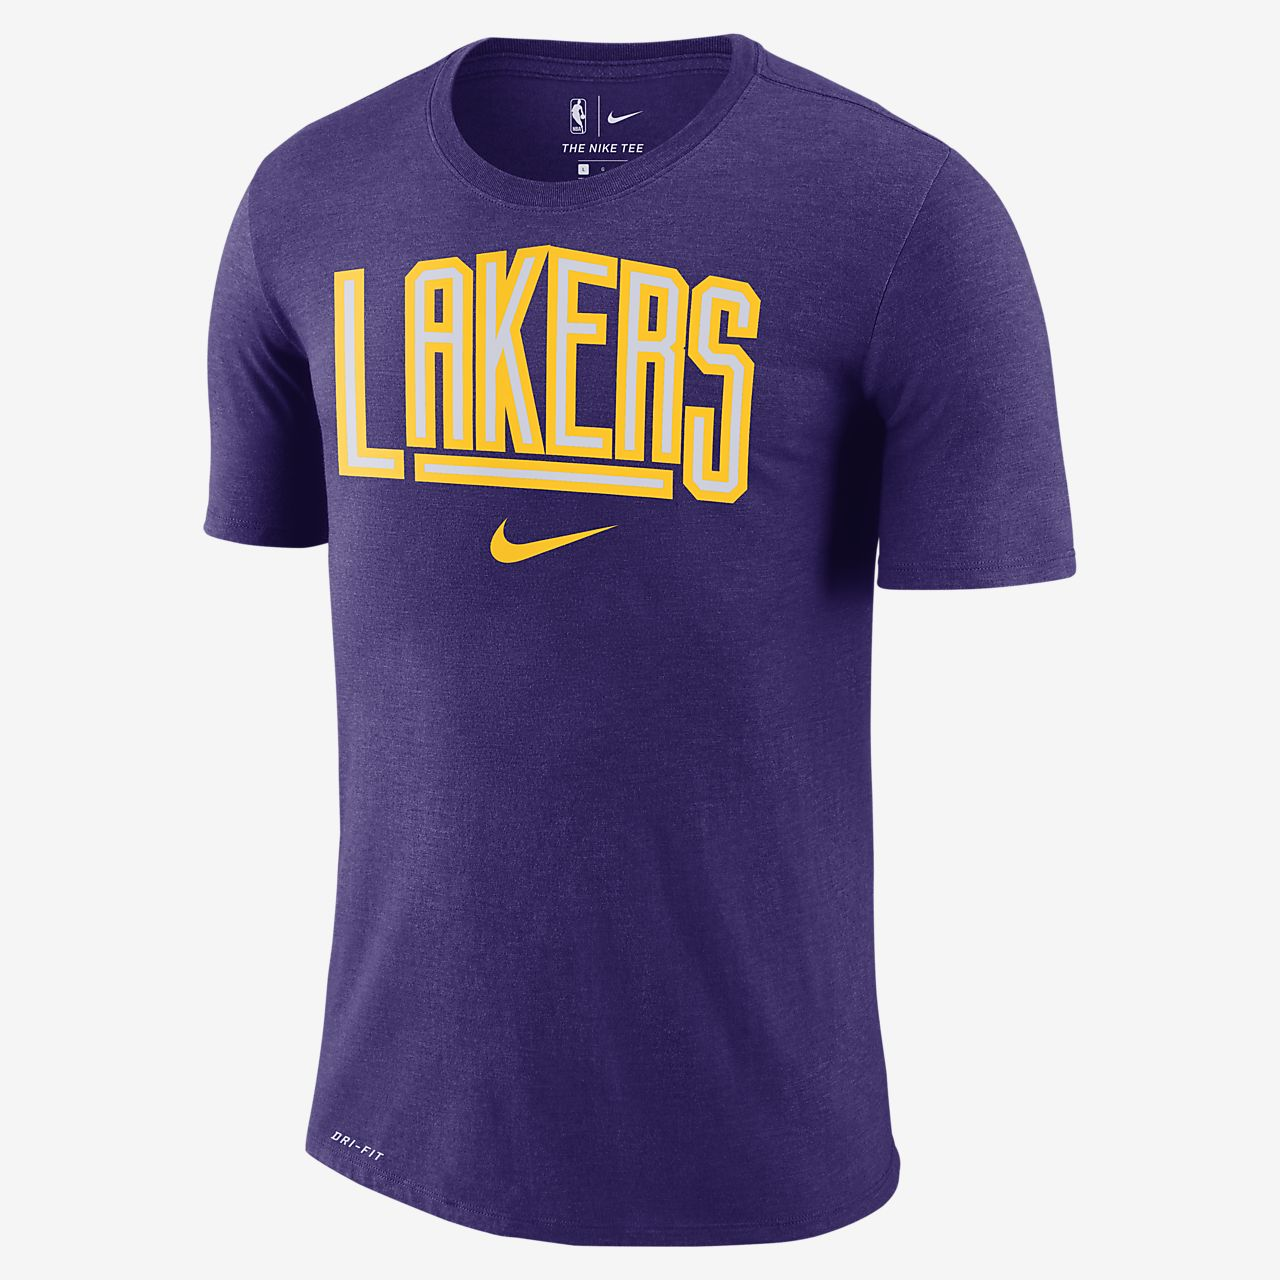 lakers t shirt nike